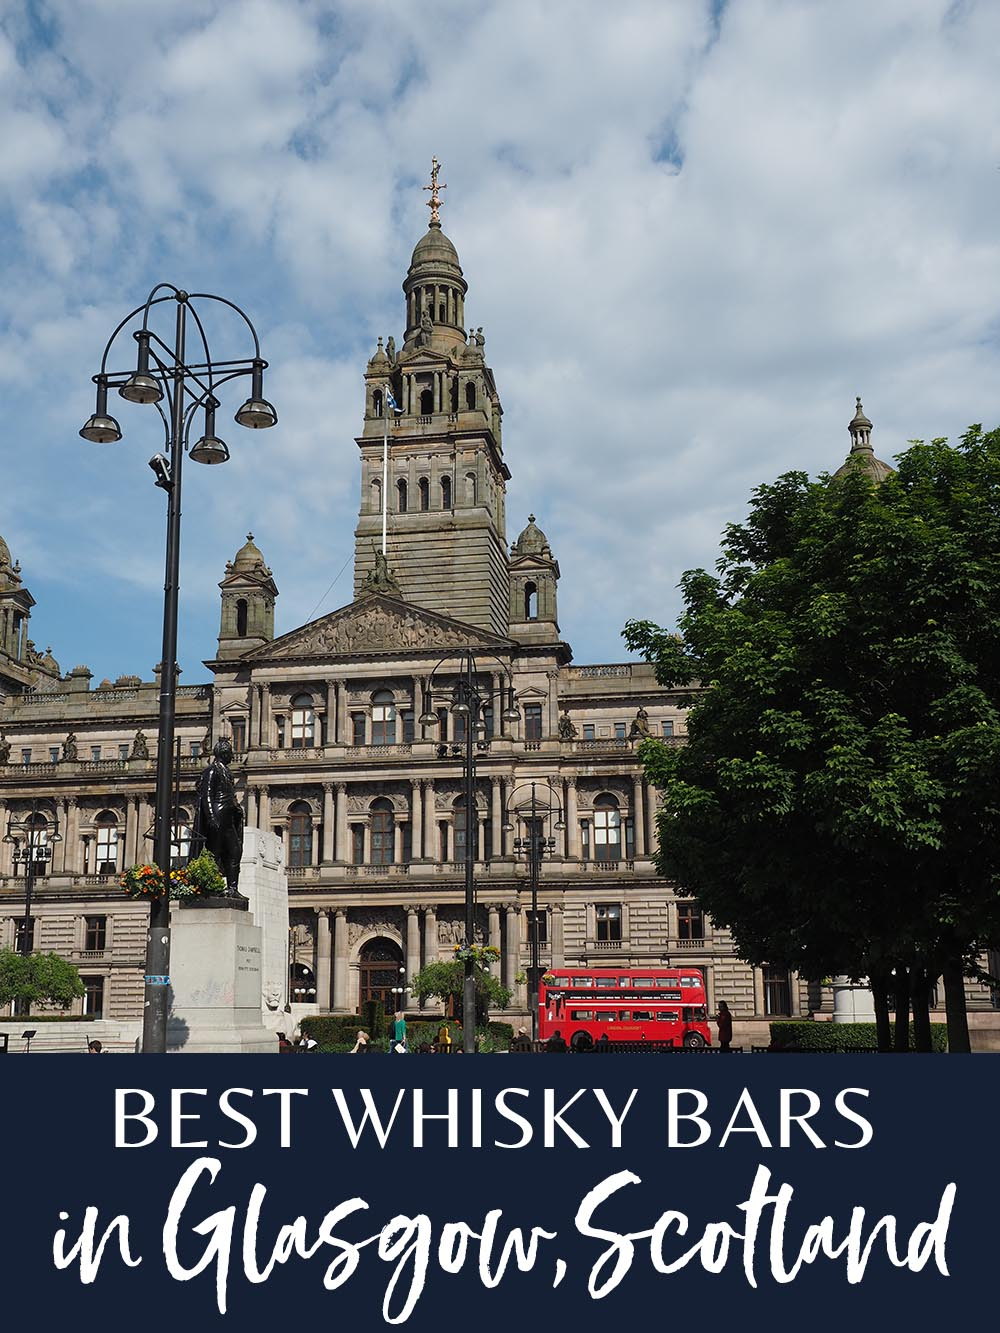 Whisky bars in Glasgow